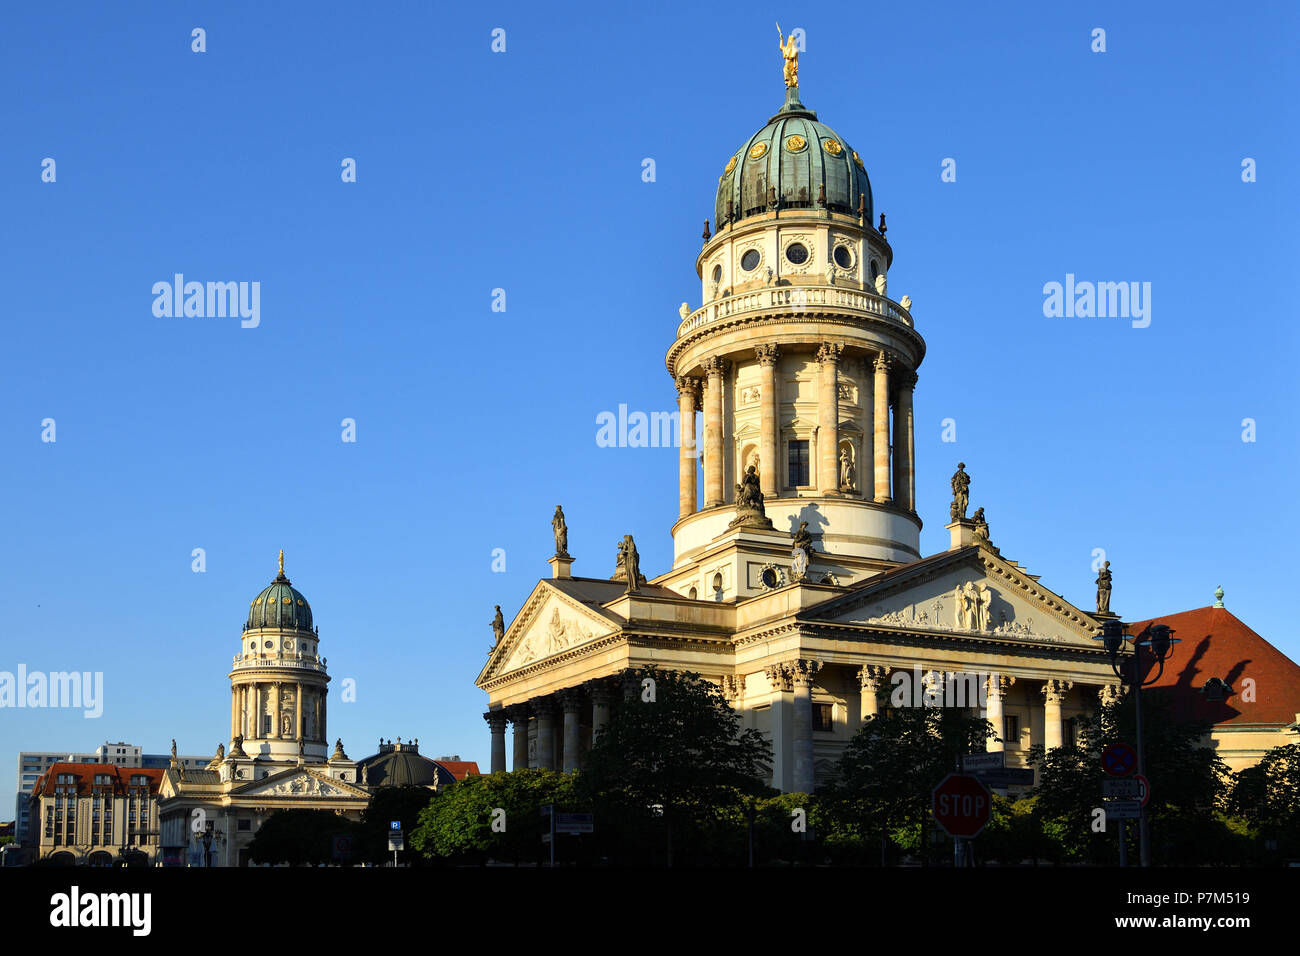 Germany, Berlin, Mitte district, Gendarmenmarkt square, French church built between 1701 and 1705 by architects Louis Gayard and Abraham Quesnay and the Deutscher Dom (German cathedral) Stock Photo